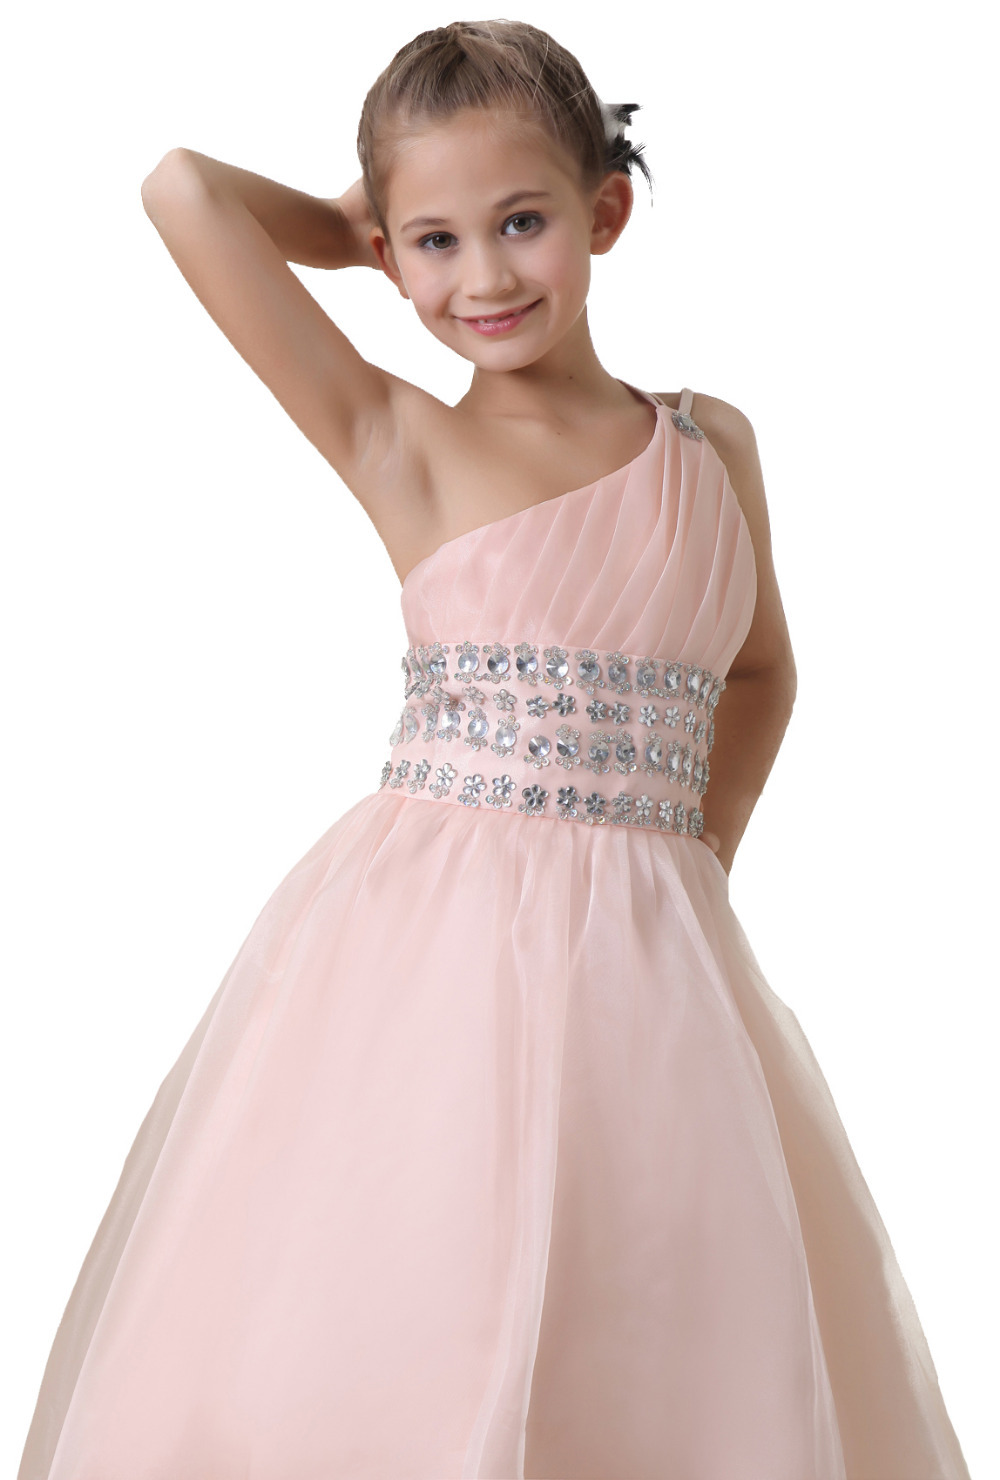 One Shoulder Pale Pink Crystal Ball Gowns Flower Girls Dresses